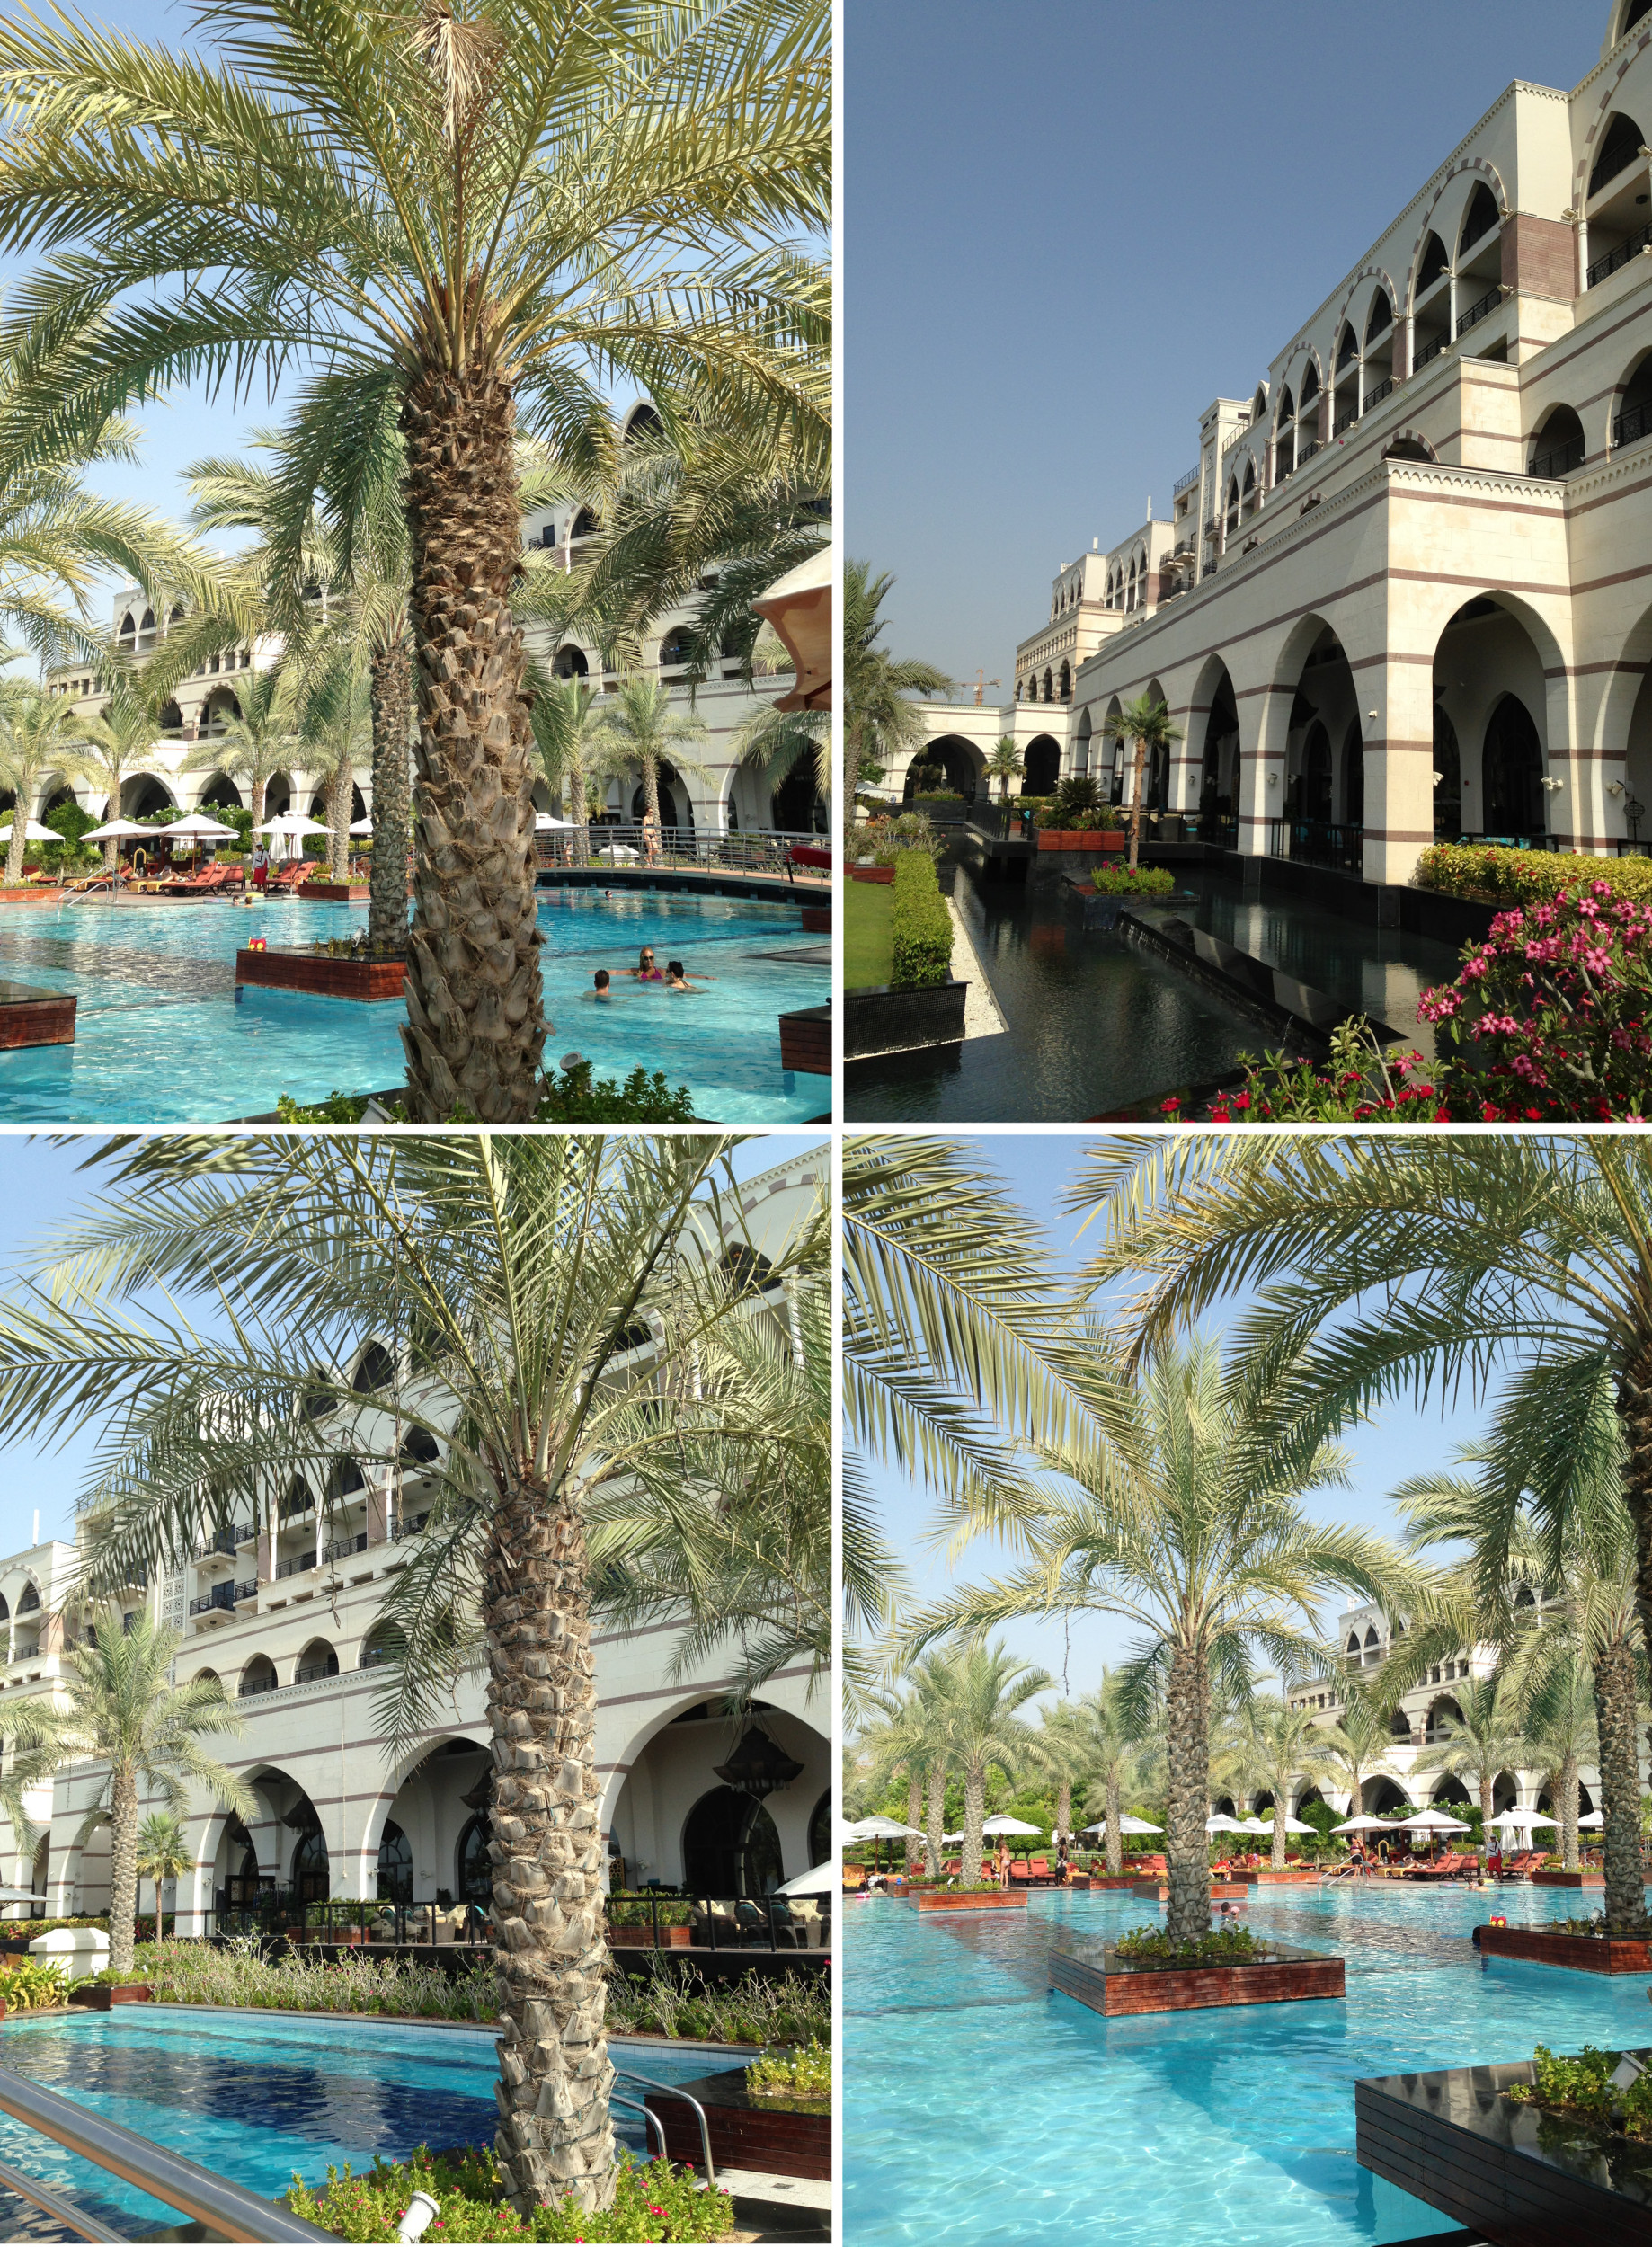 Zabeel Saray Pool Dubai